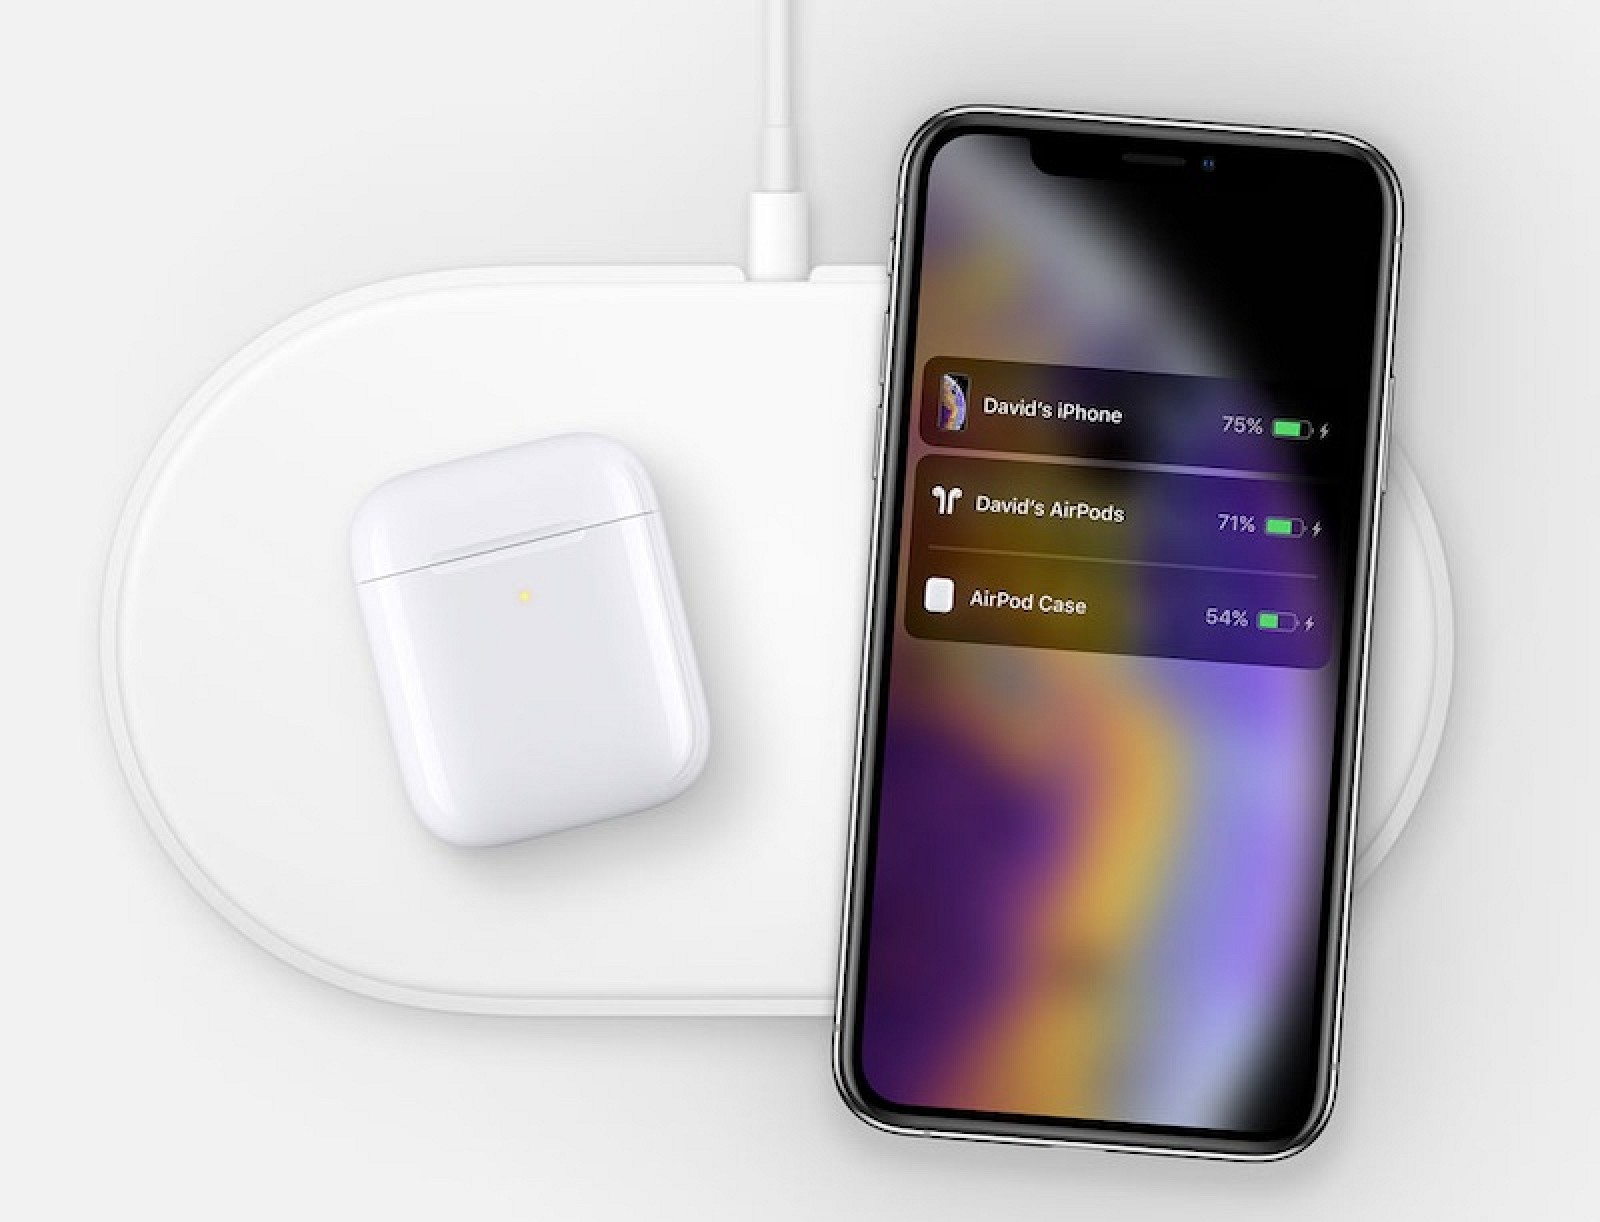 d21a8a5b4b5 New AirPower Image With iPhone XS Appears Within Source Code on Apple's  Website